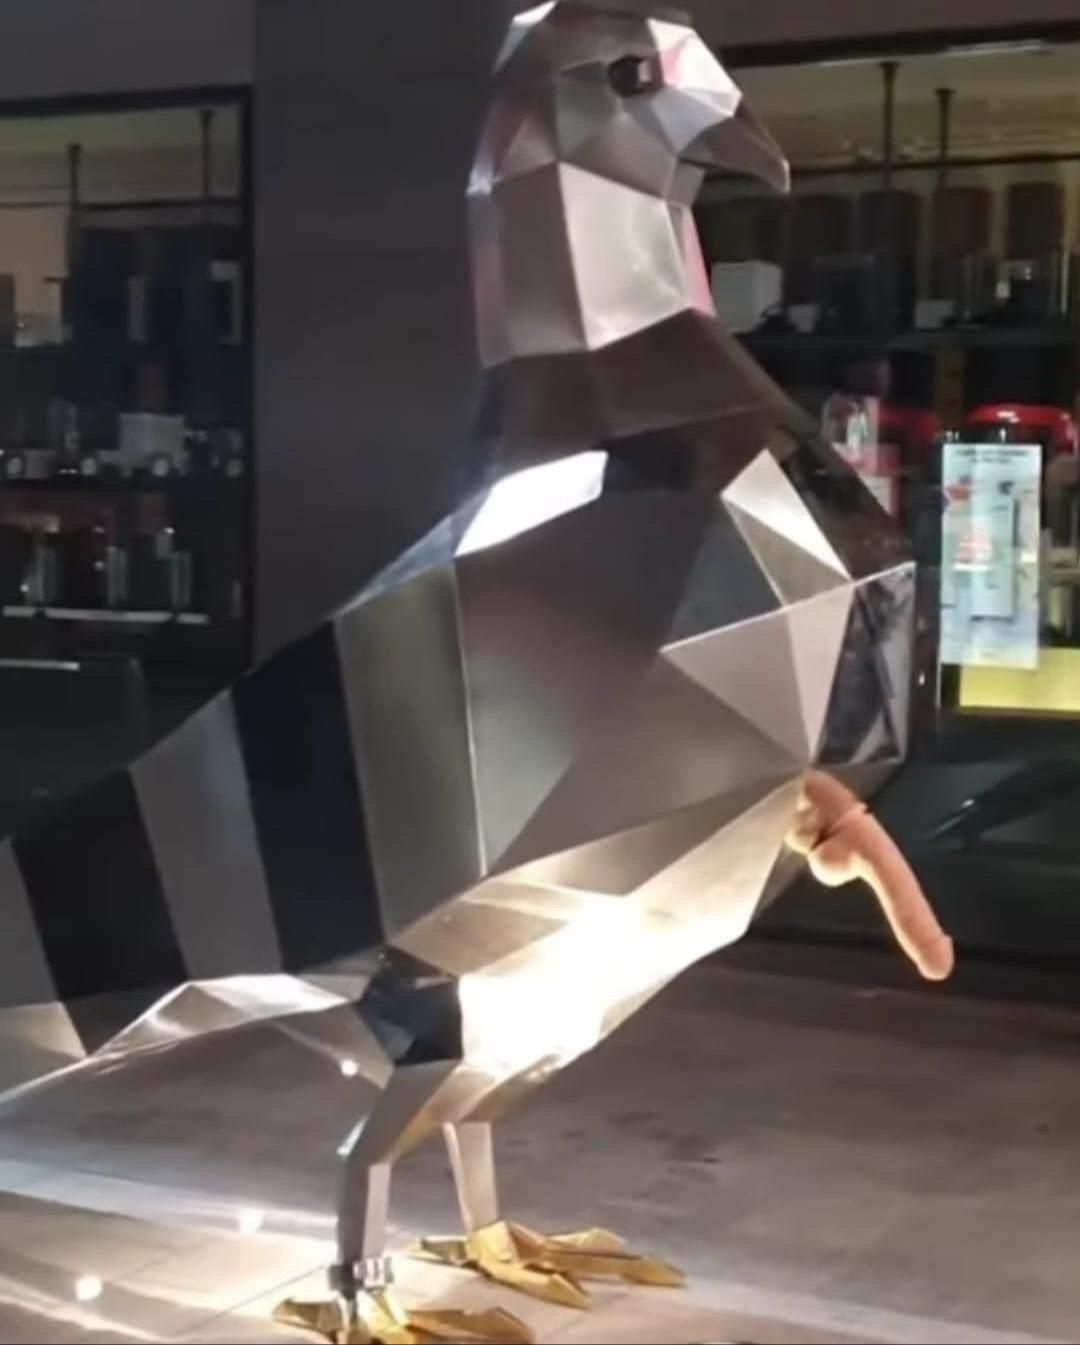 The City of Adelaide spent $174000 to erect this statue in Rundle Mall. Soon after, somone added an erection of their own.